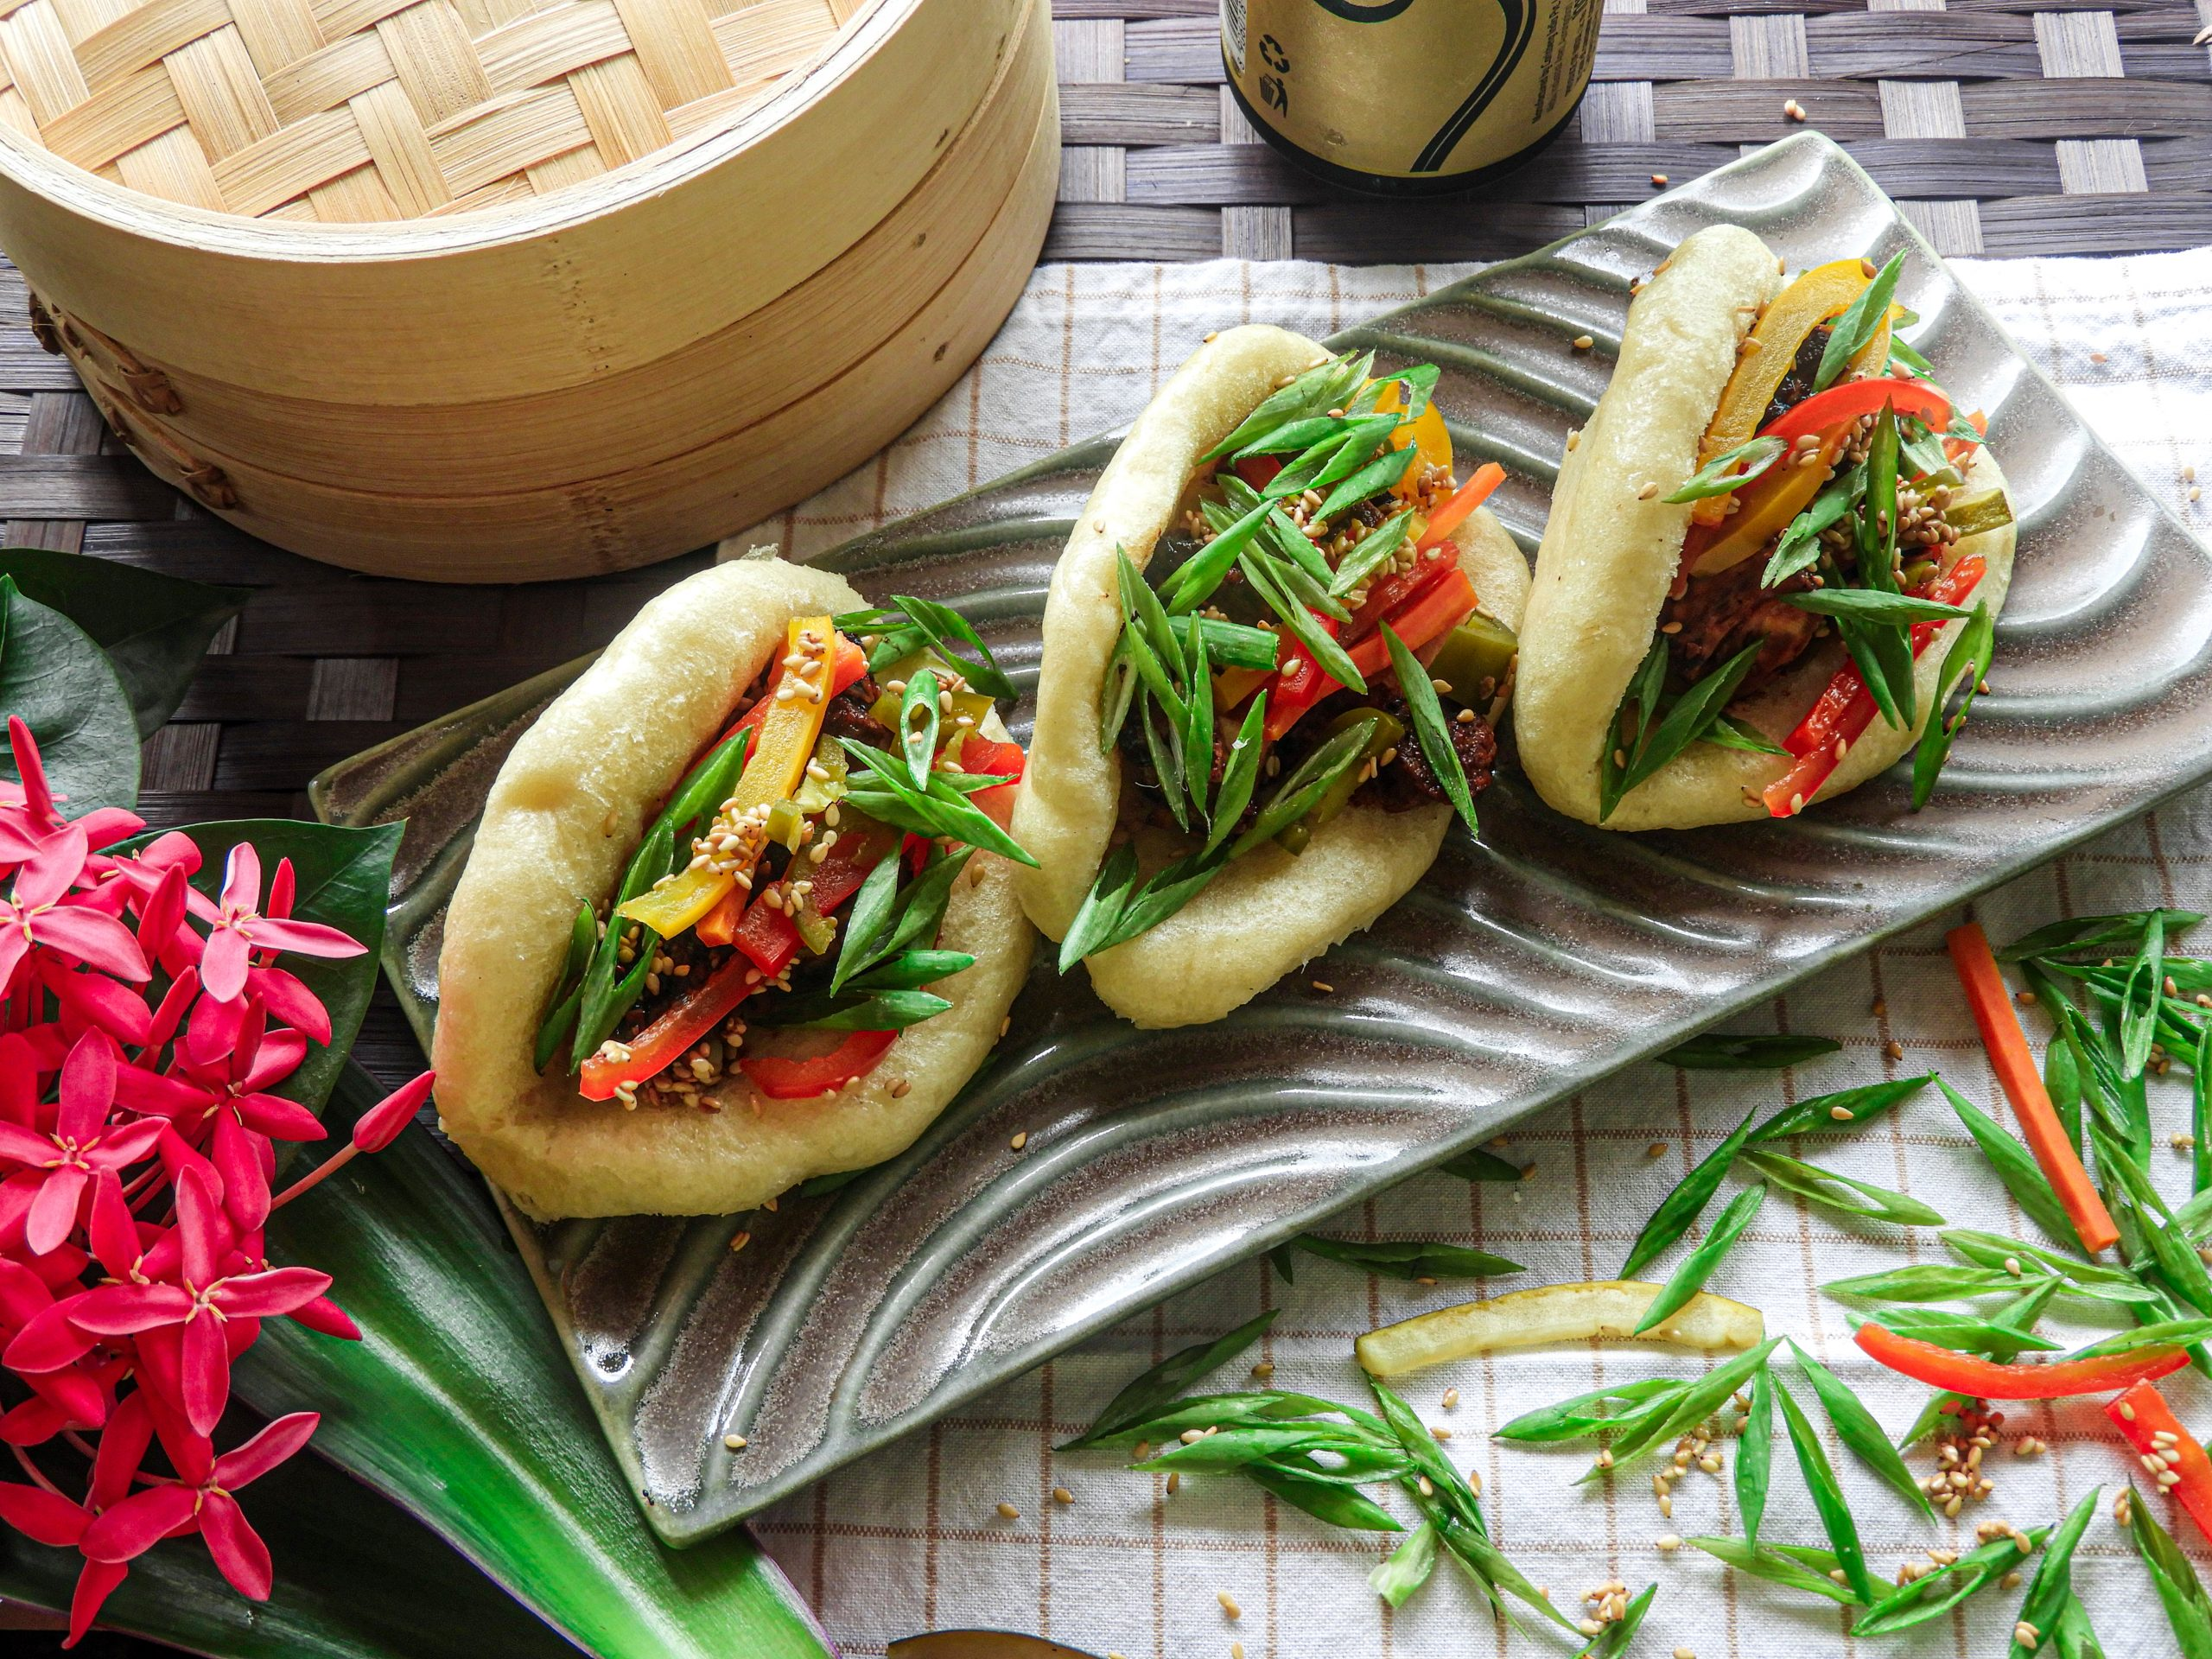 Steamed Bao Buns with Tofu- Korean cuisine at Kitchen by Nidhi